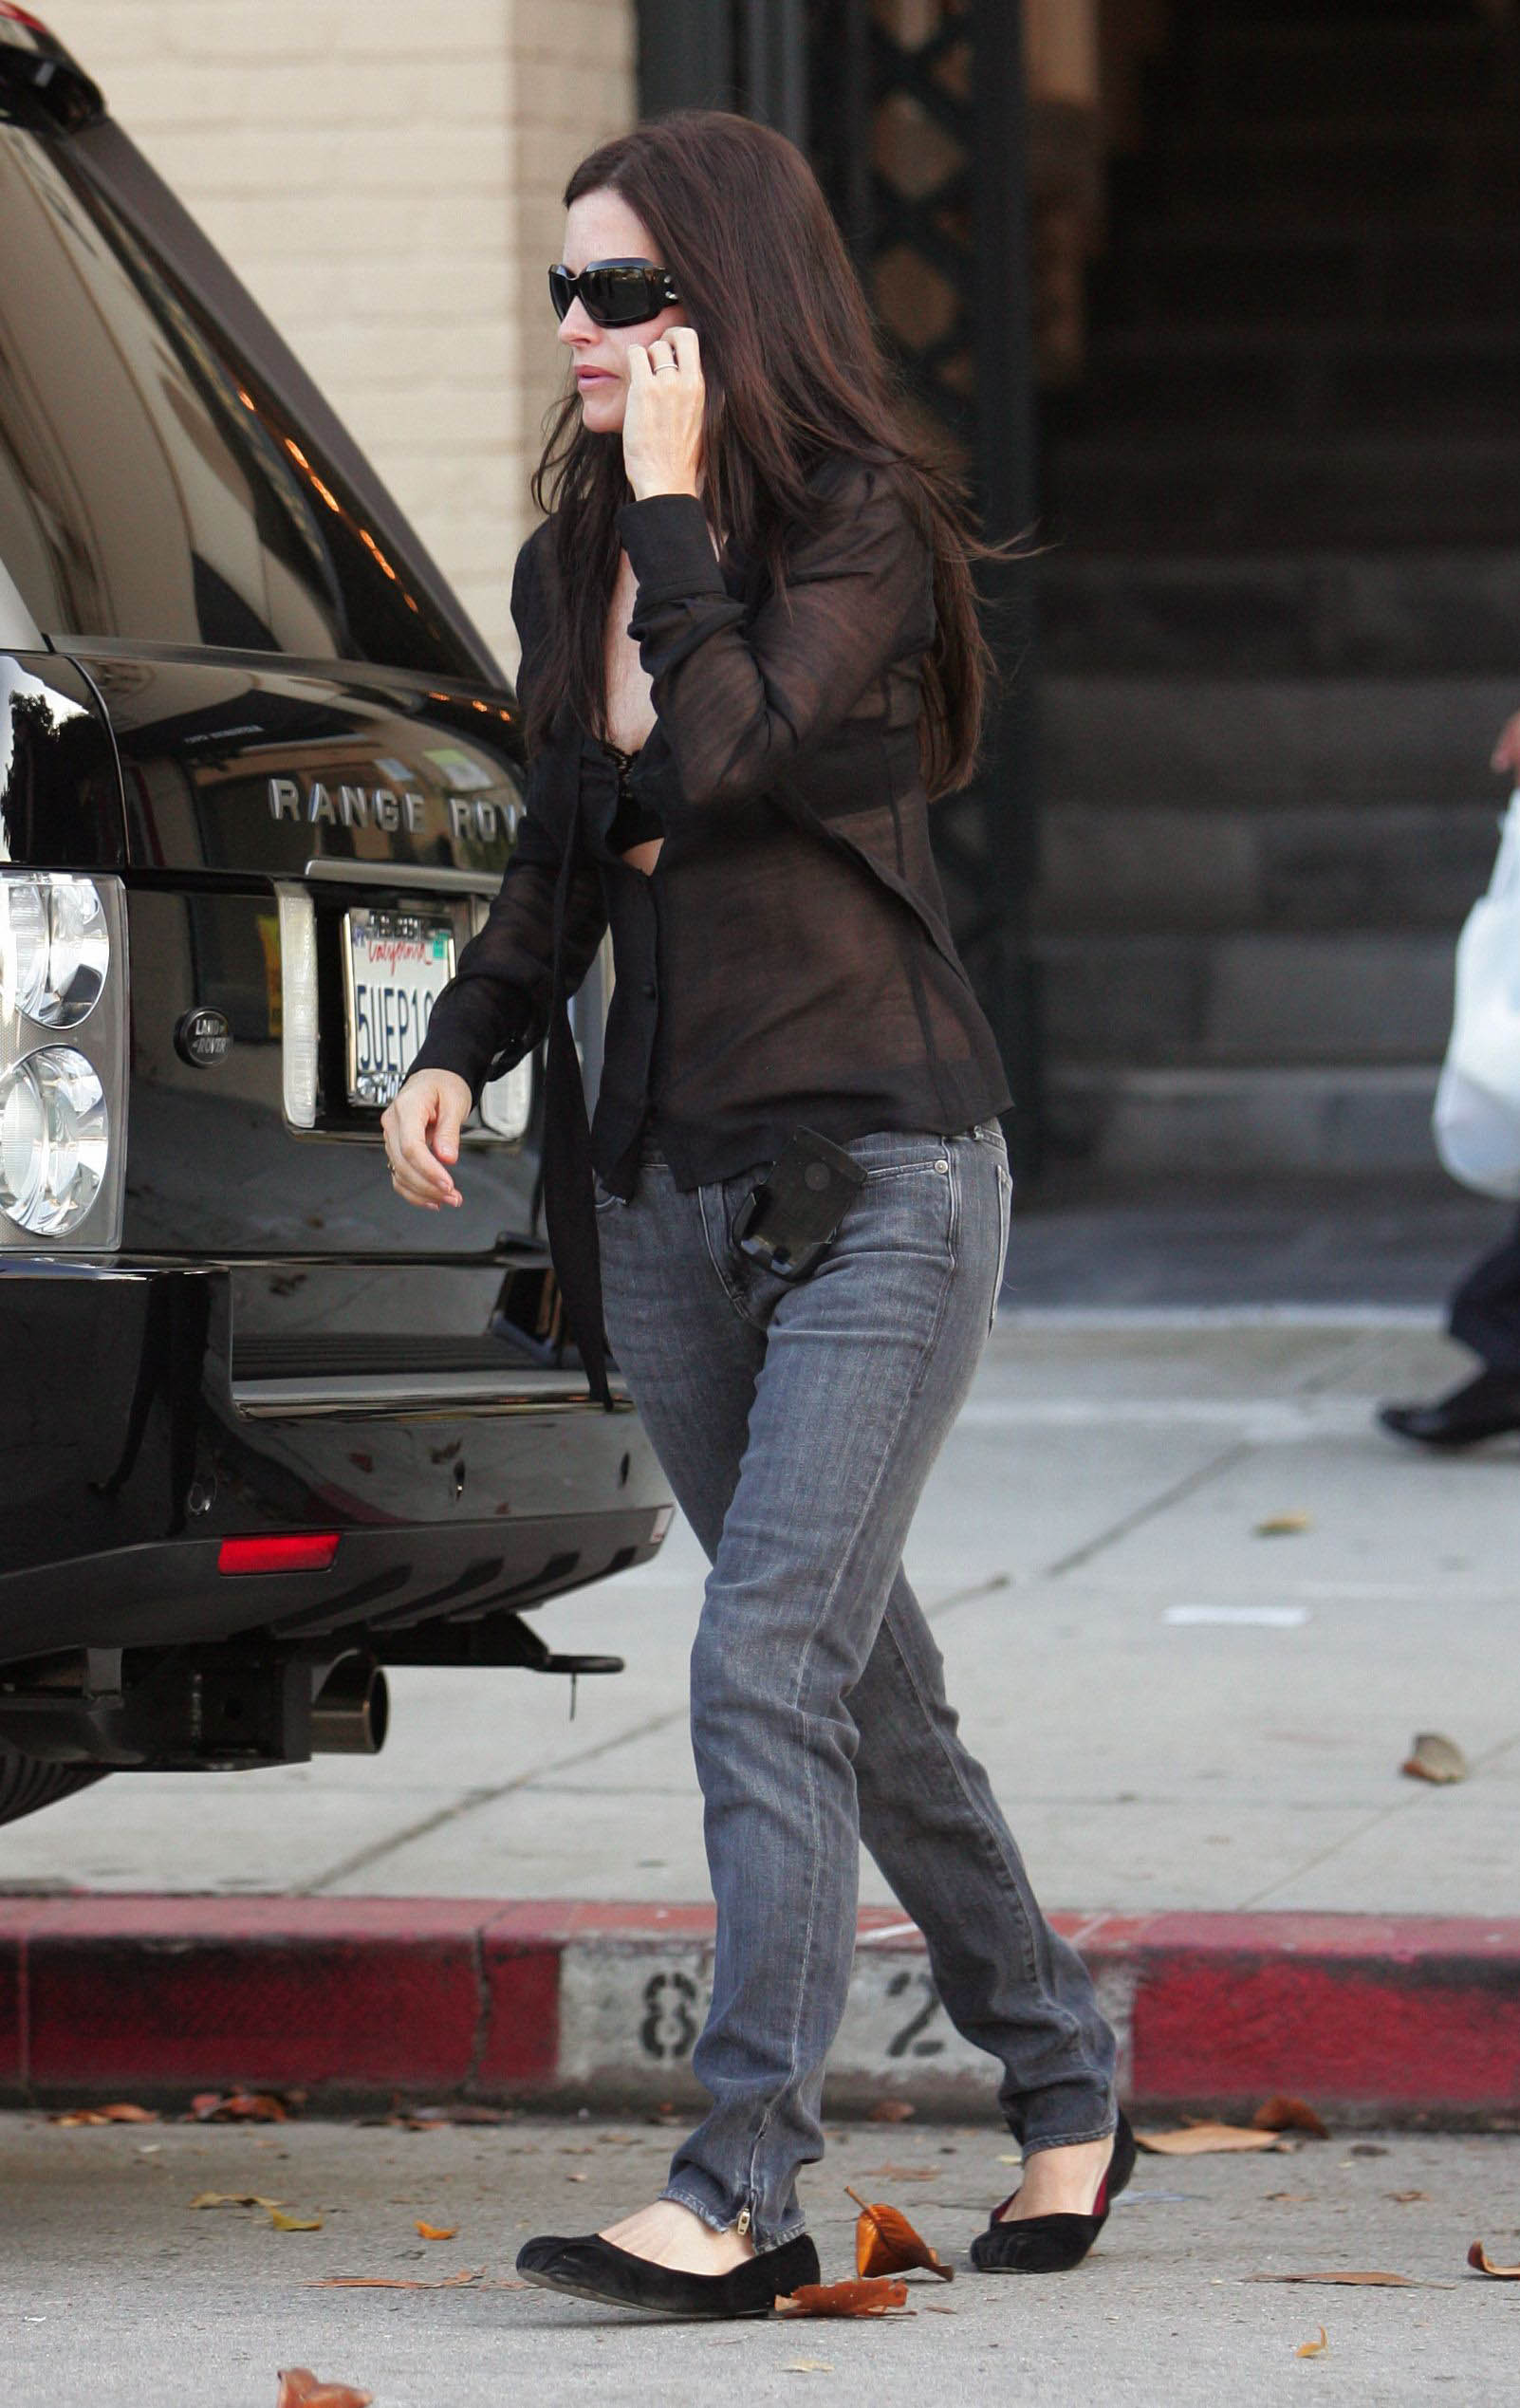 69827_Courteney_Cox_006_122_367lo